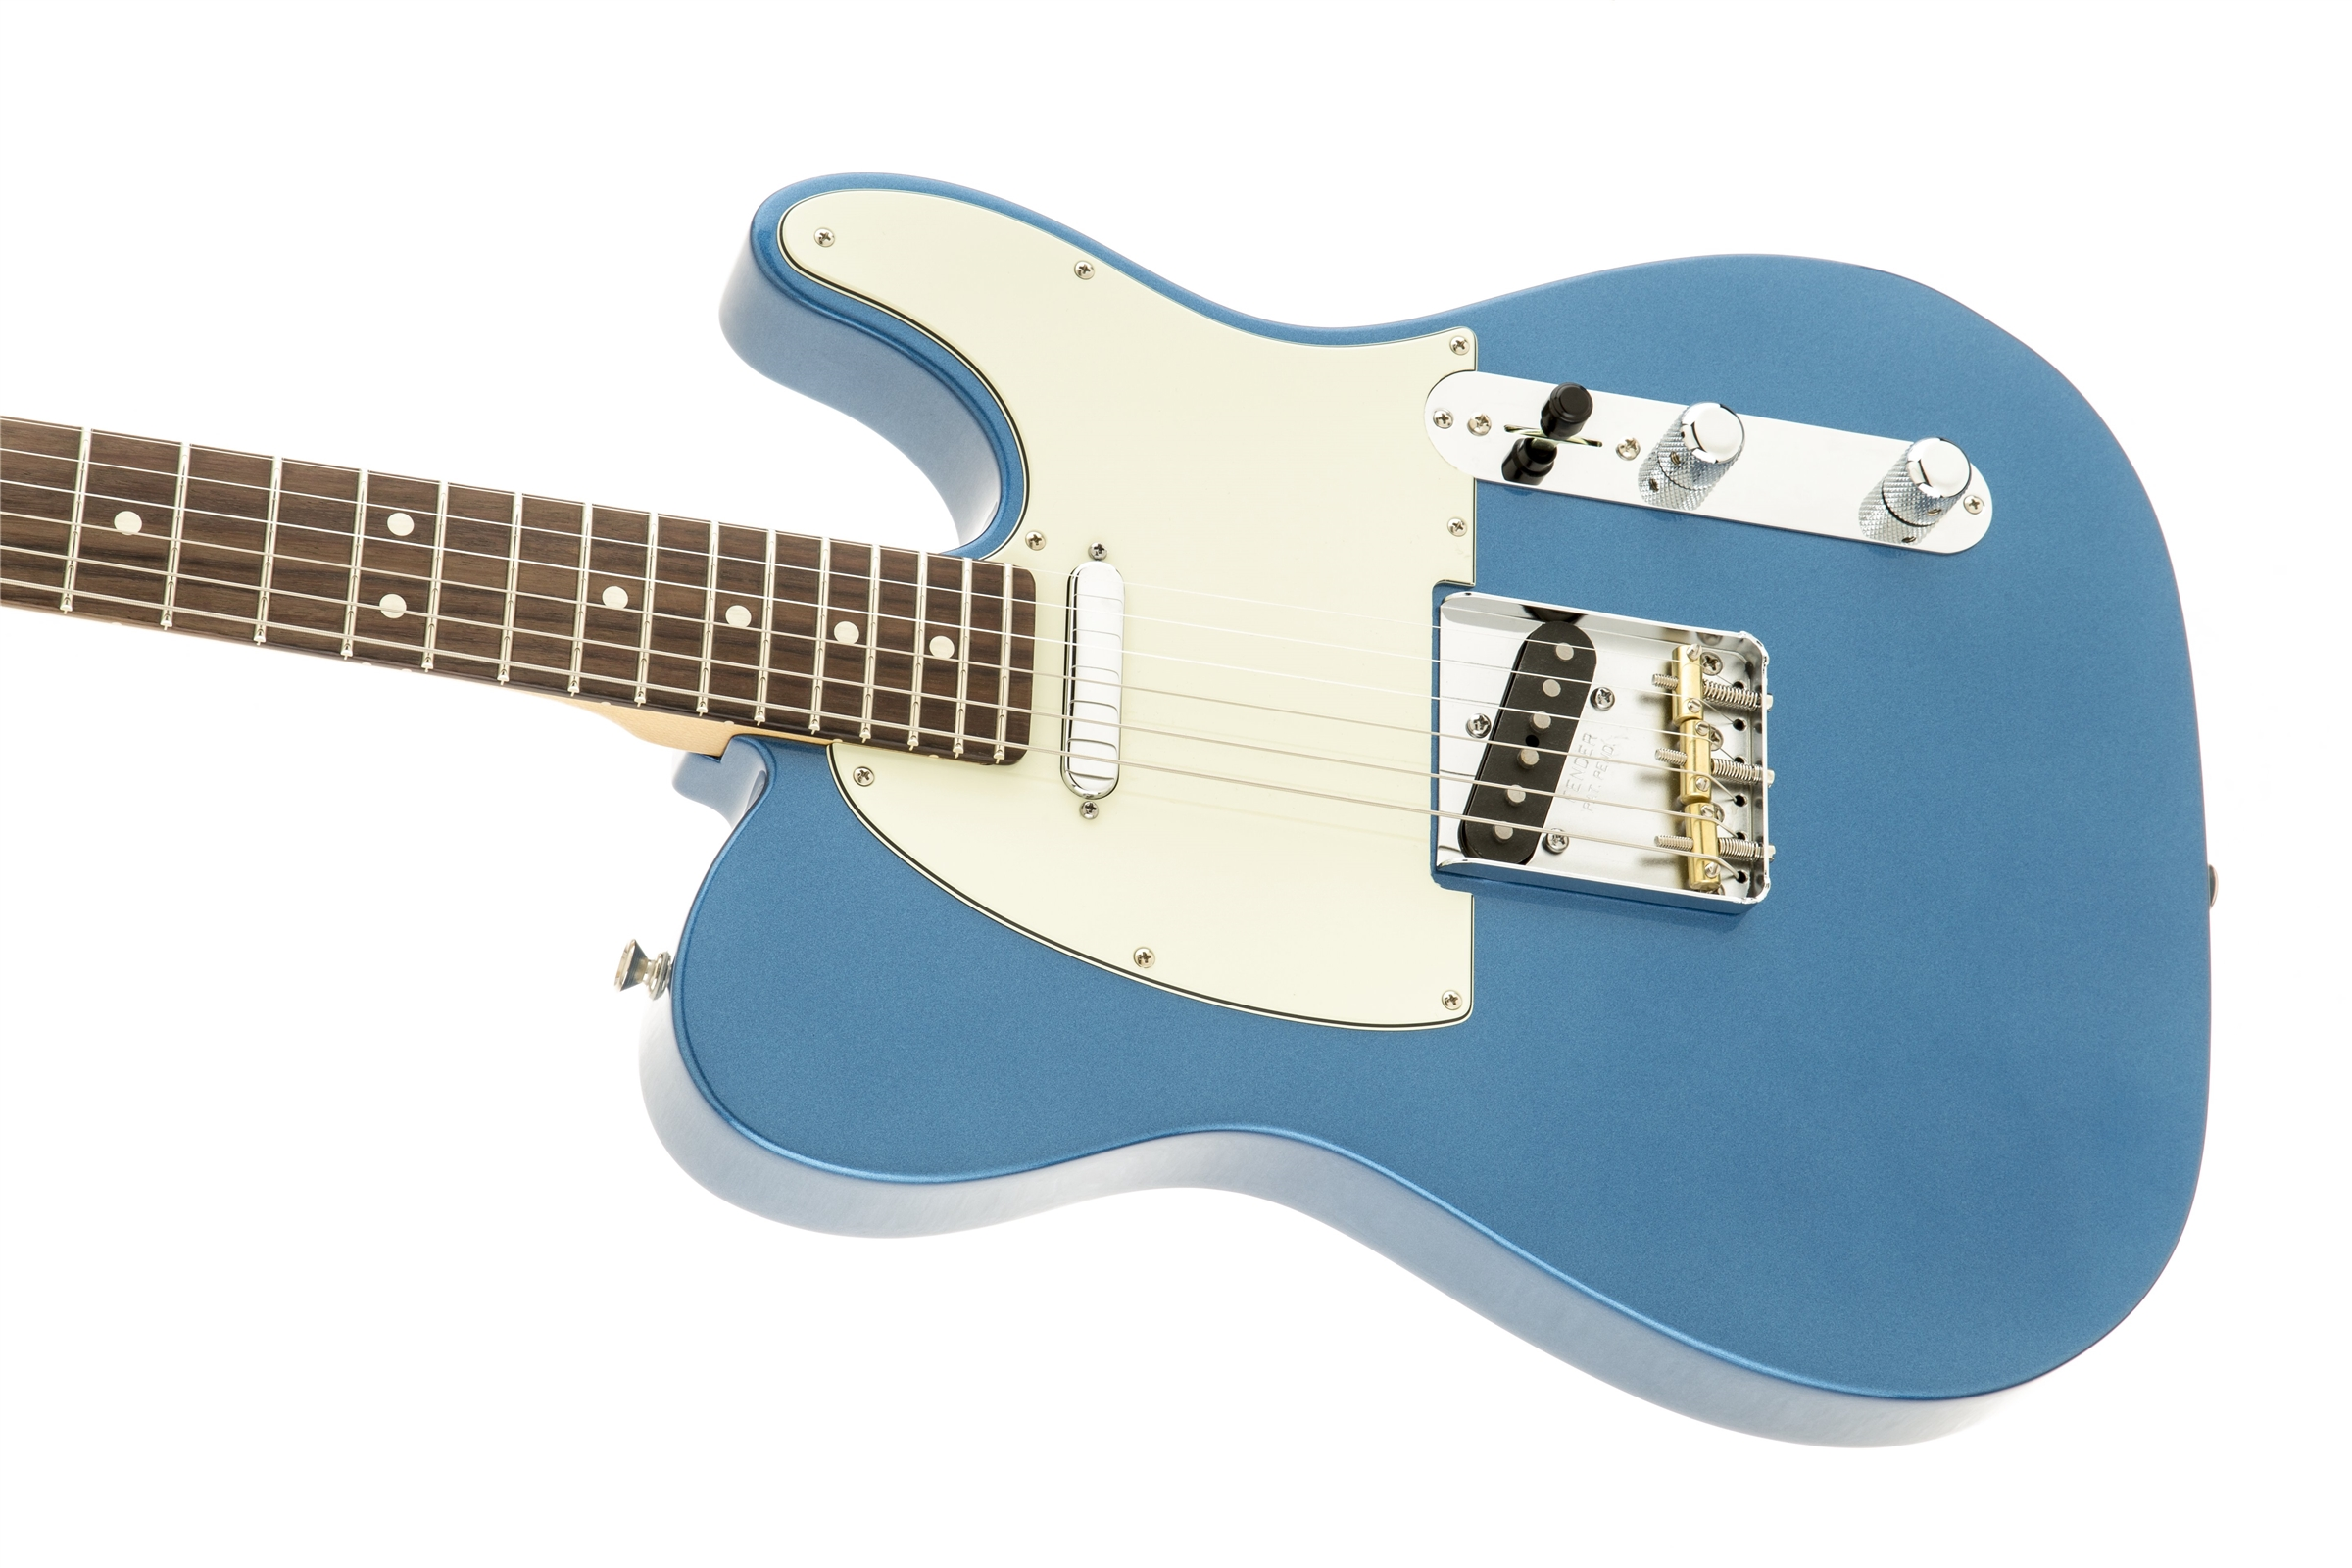 american special telecaster® fender electric guitars american special telecaster® lake placid blue